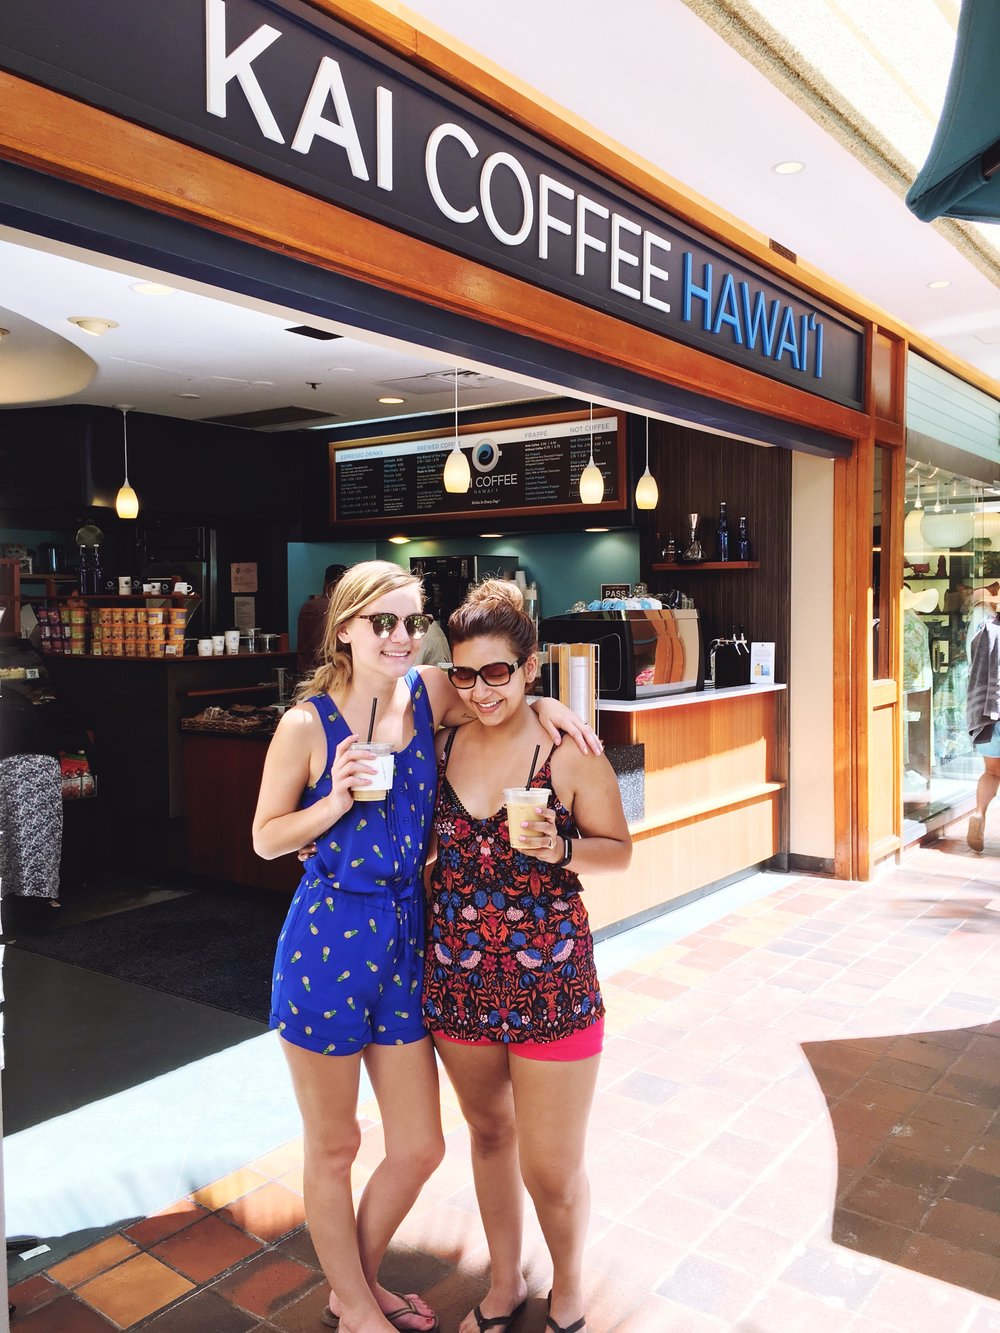 BFF's having Kai Coffee Lattes in Hawaii wearing tropical inspired clothing.